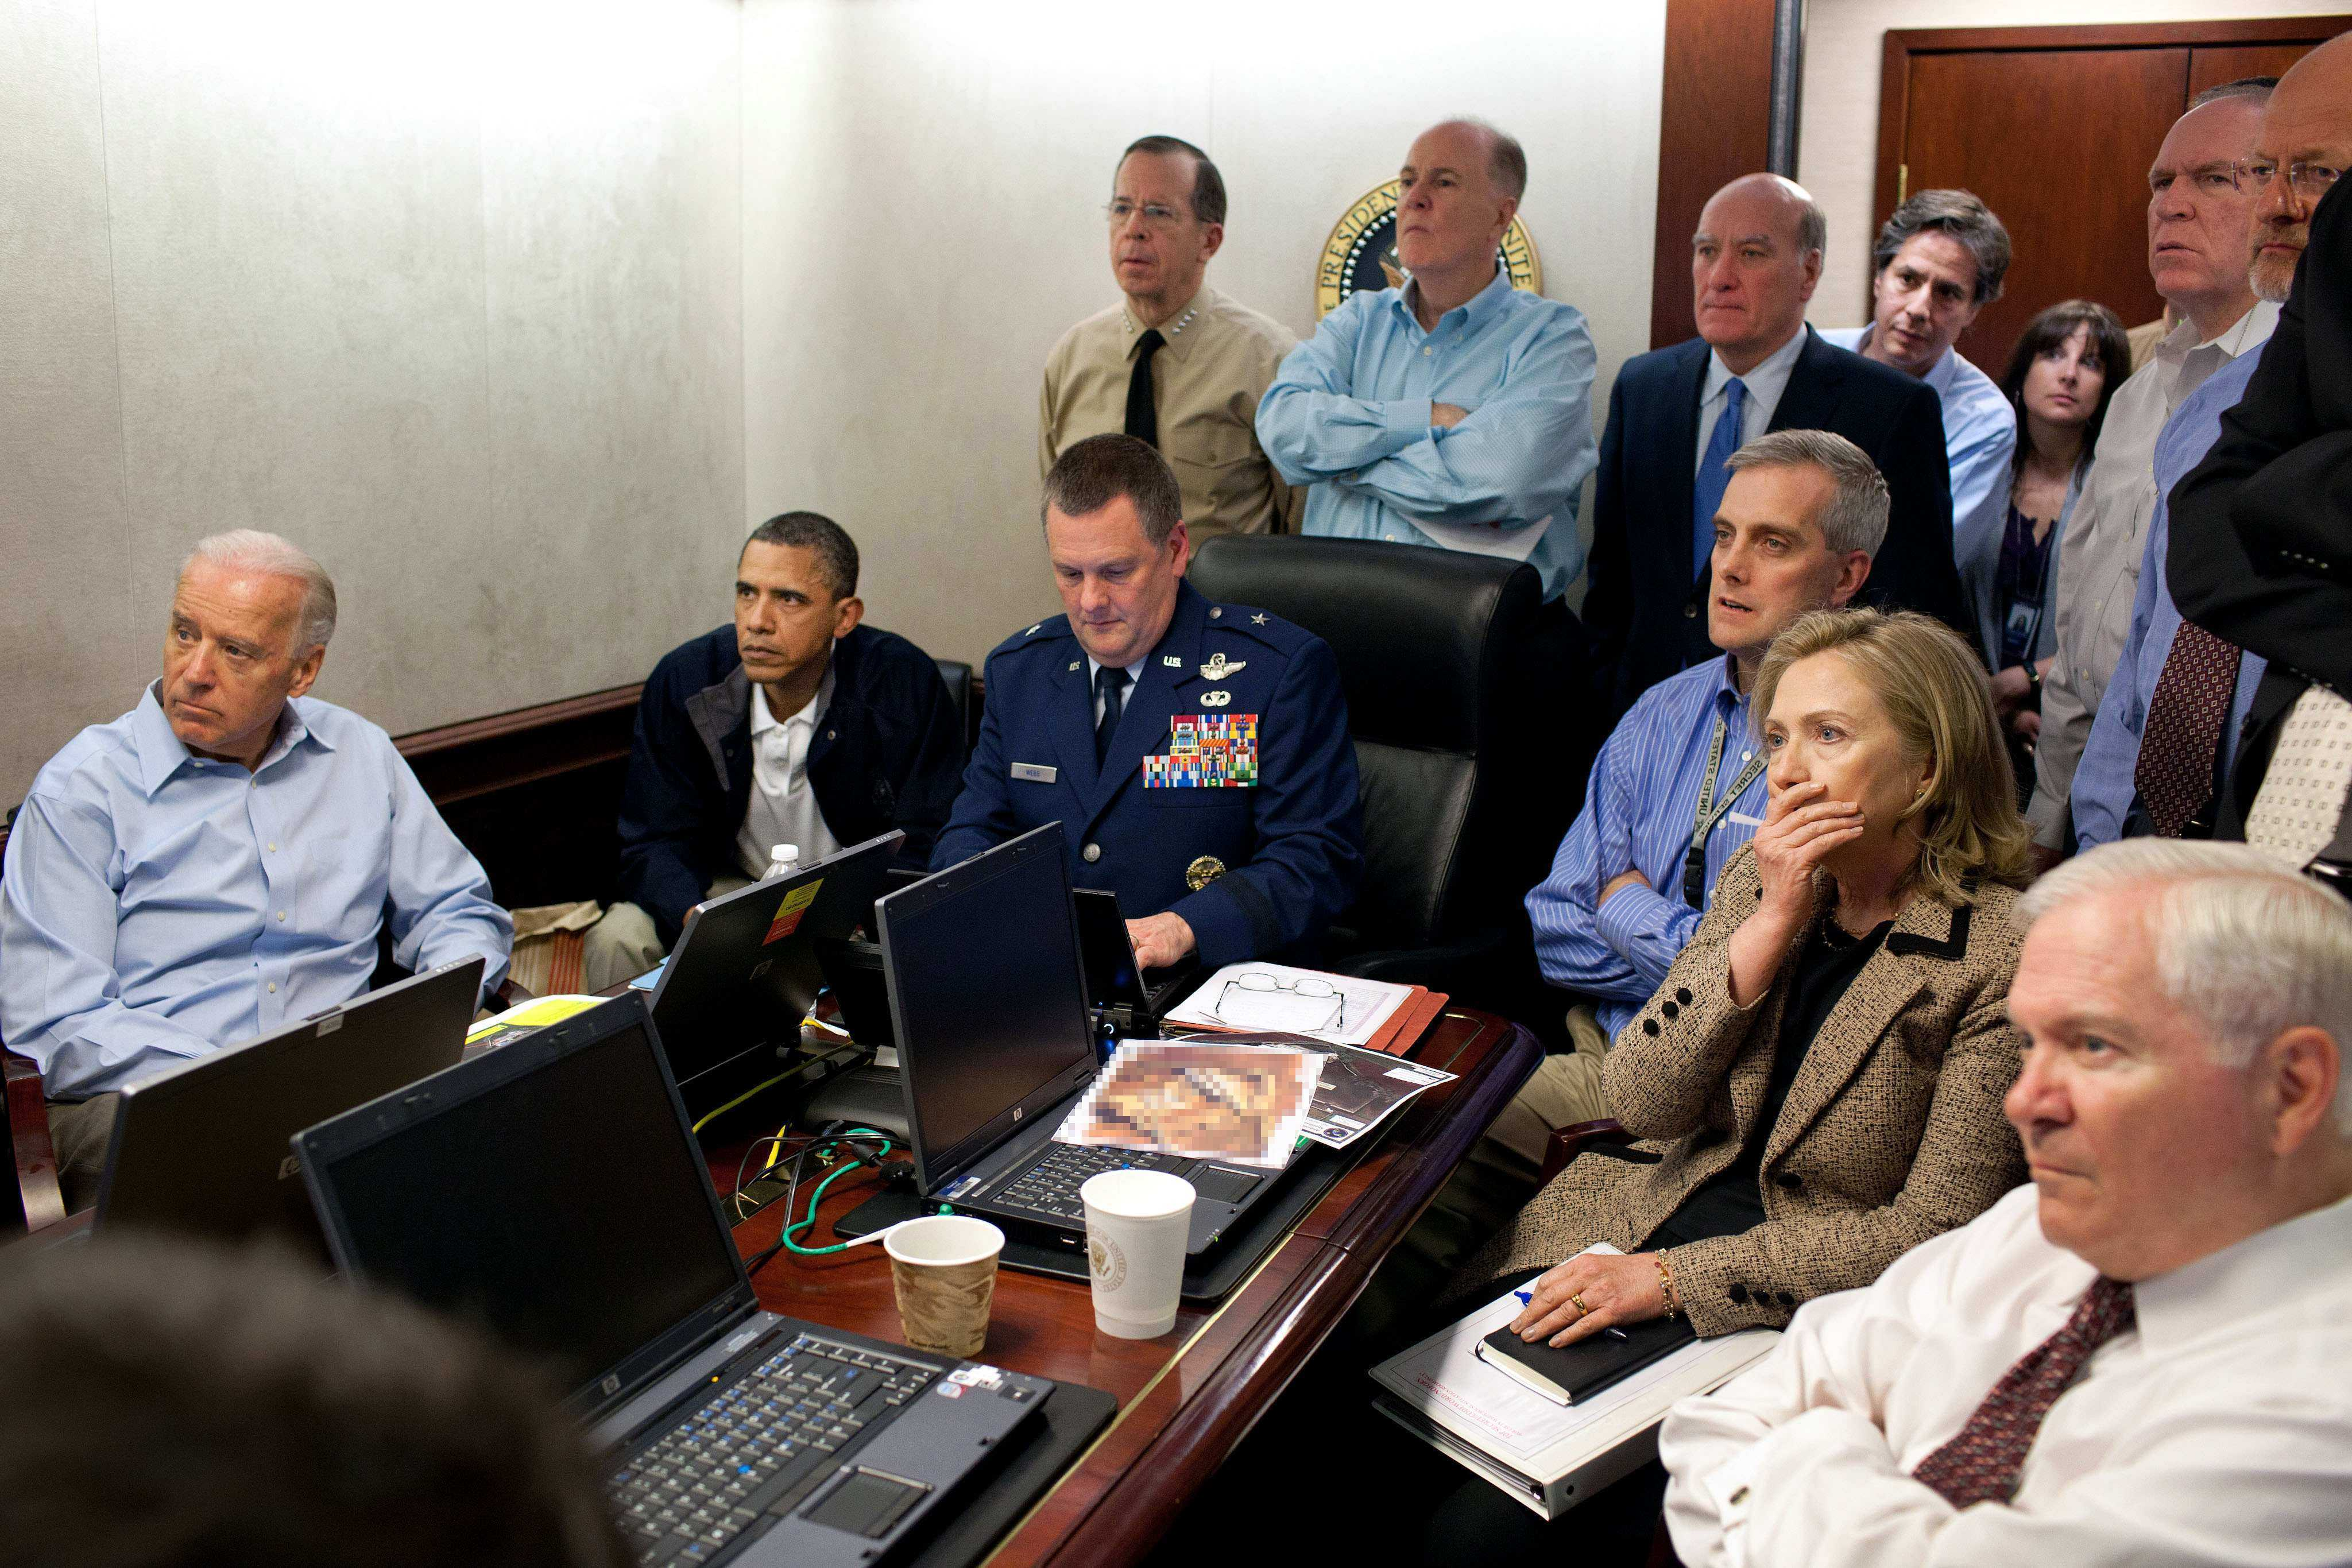 In this May 1, 2011 image released by the White House and digitally altered by the source to diffuse the paper in front of Secretary of State Hillary Rodham Clinton, President Barack Obama and Vice President Joe Biden, along with with members of the national security team, receive an update on the mission against Osama bin Laden in the Situation Room of the White House in Washington. (Pete Souza/The White House via AP)